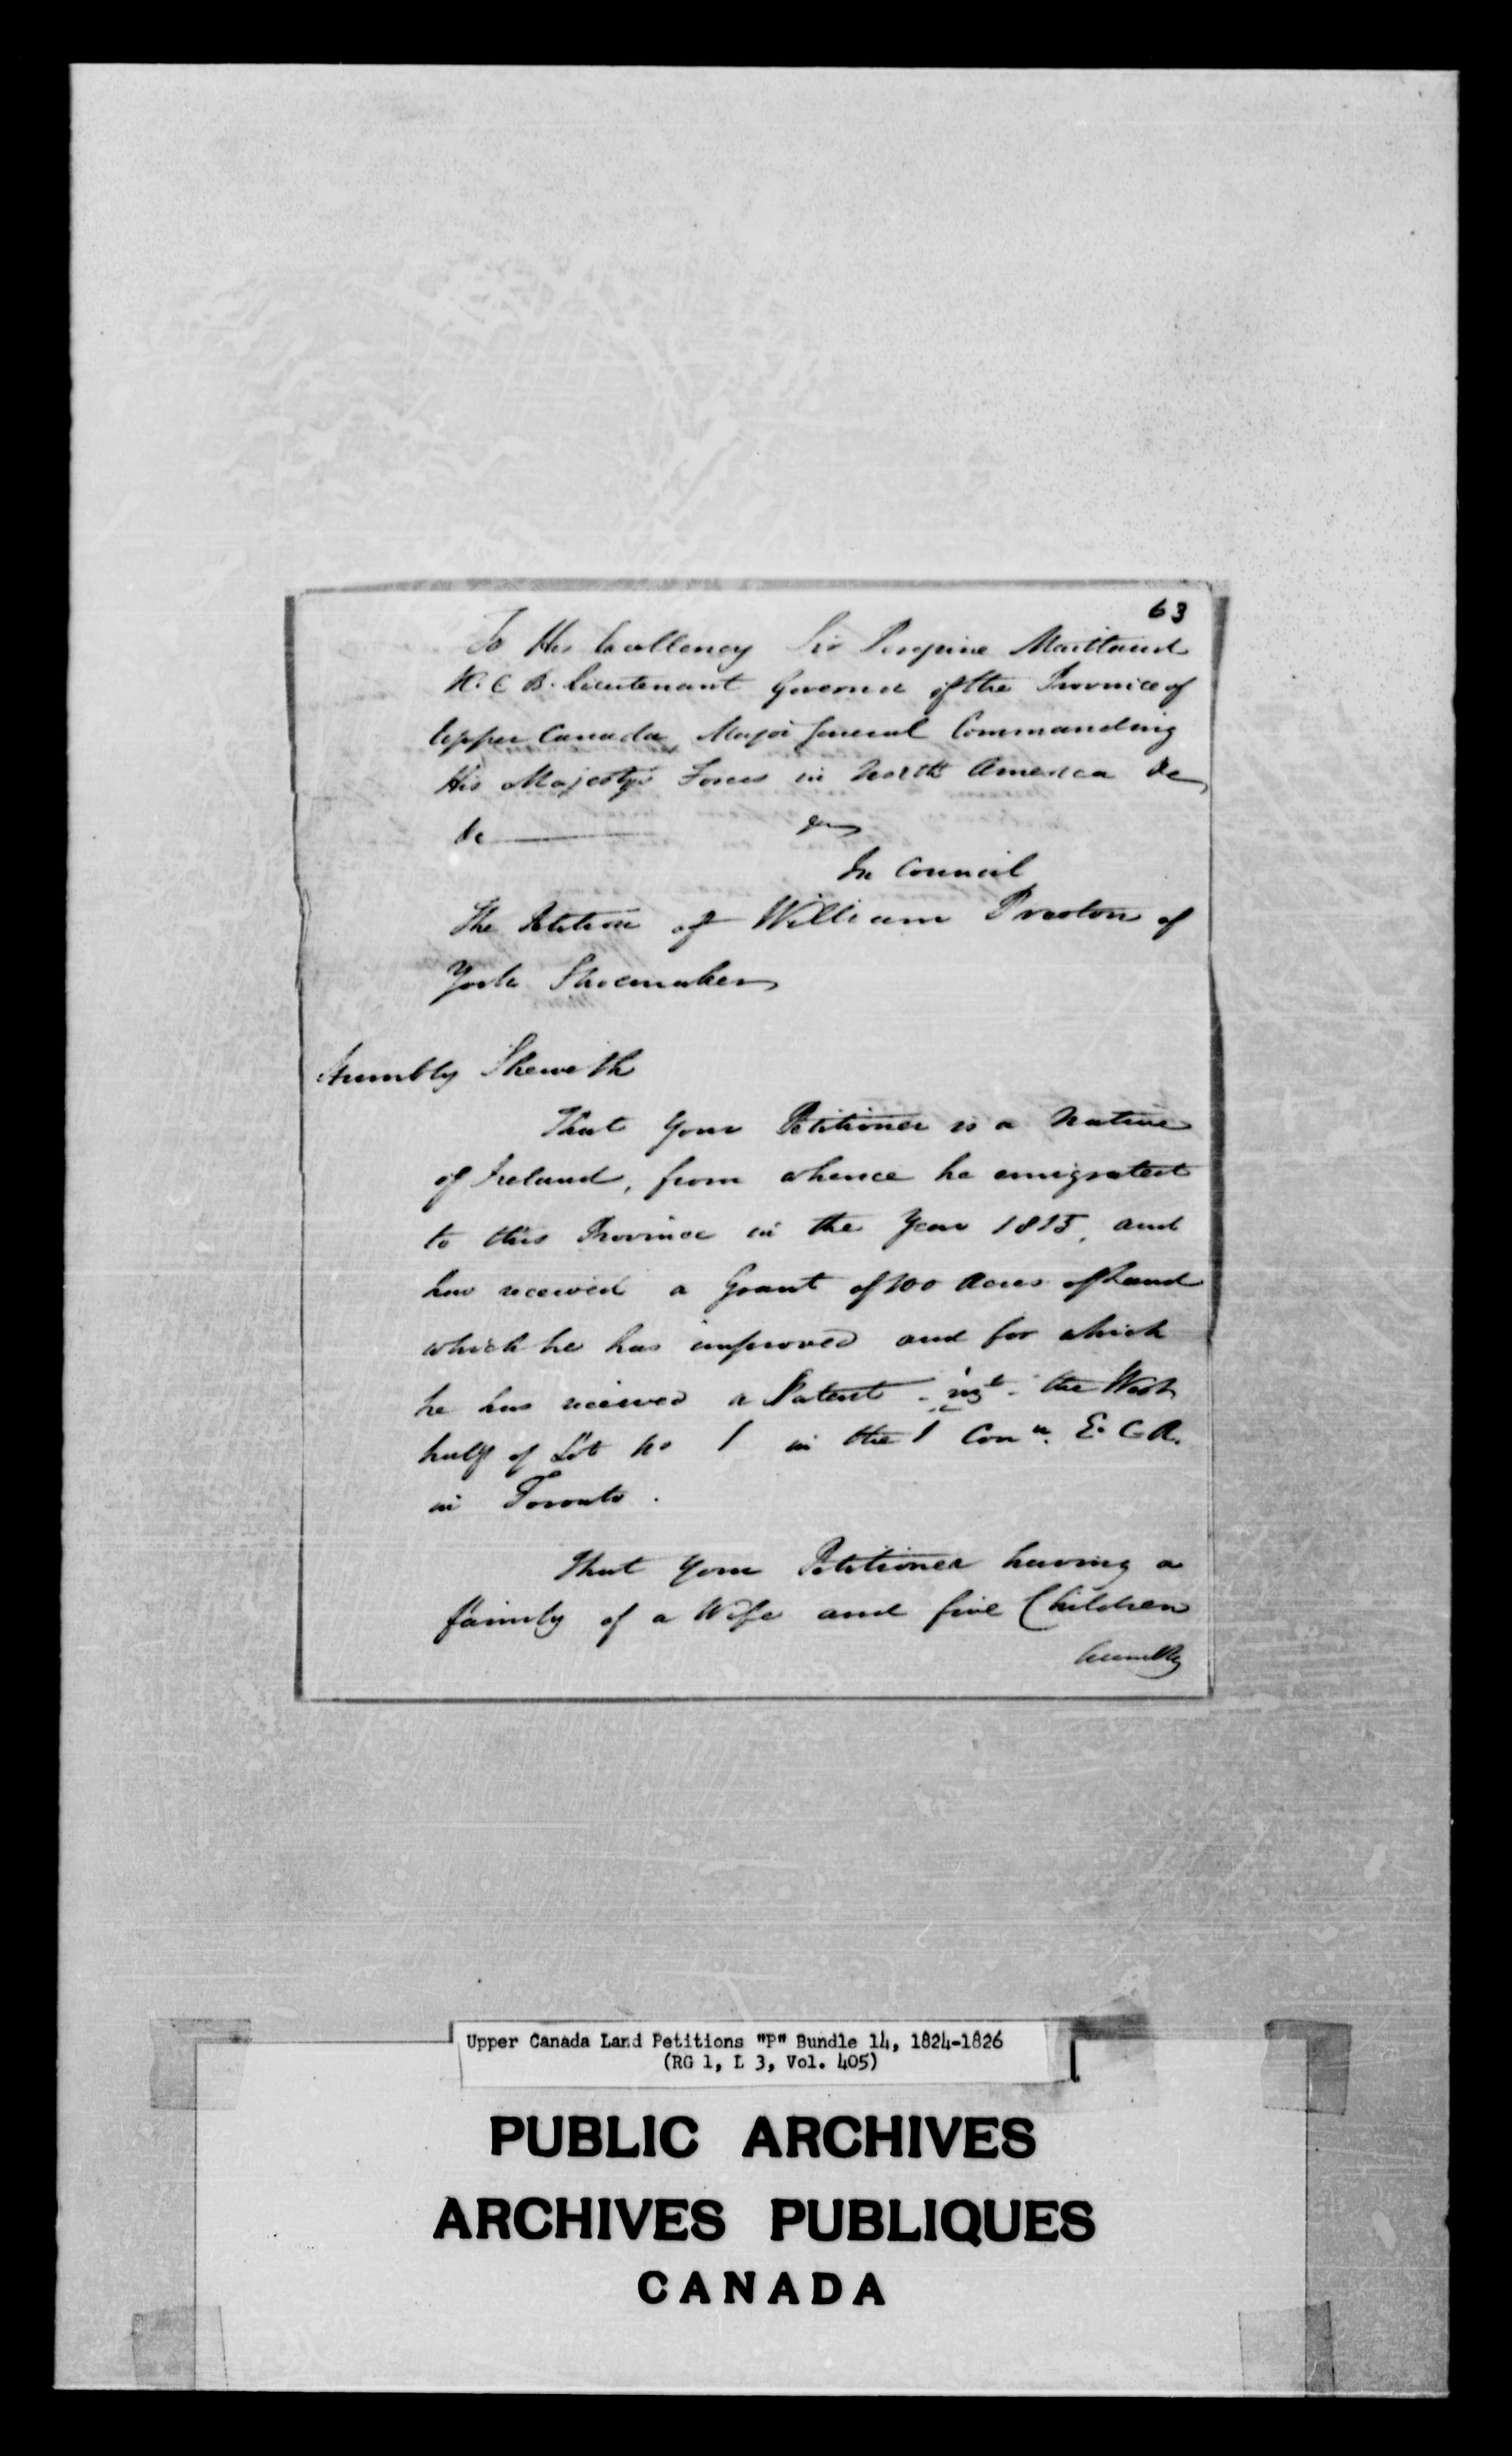 Title: Upper Canada Land Petitions (1763-1865) - Mikan Number: 205131 - Microform: c-2491